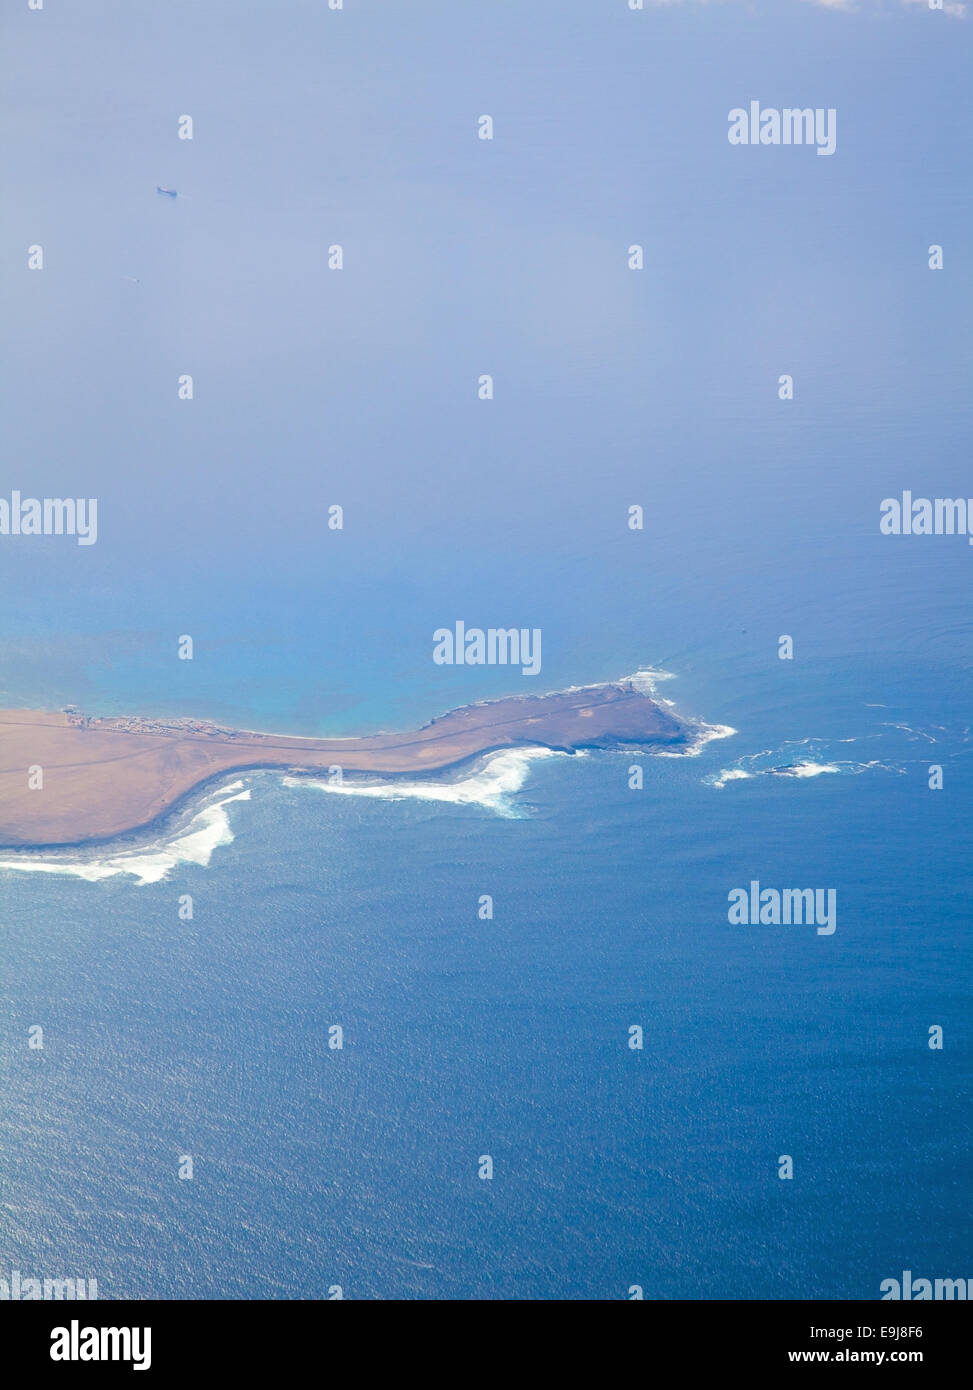 Fuerteventura, Canary islands, from the air, southern tip of the island - Stock Image